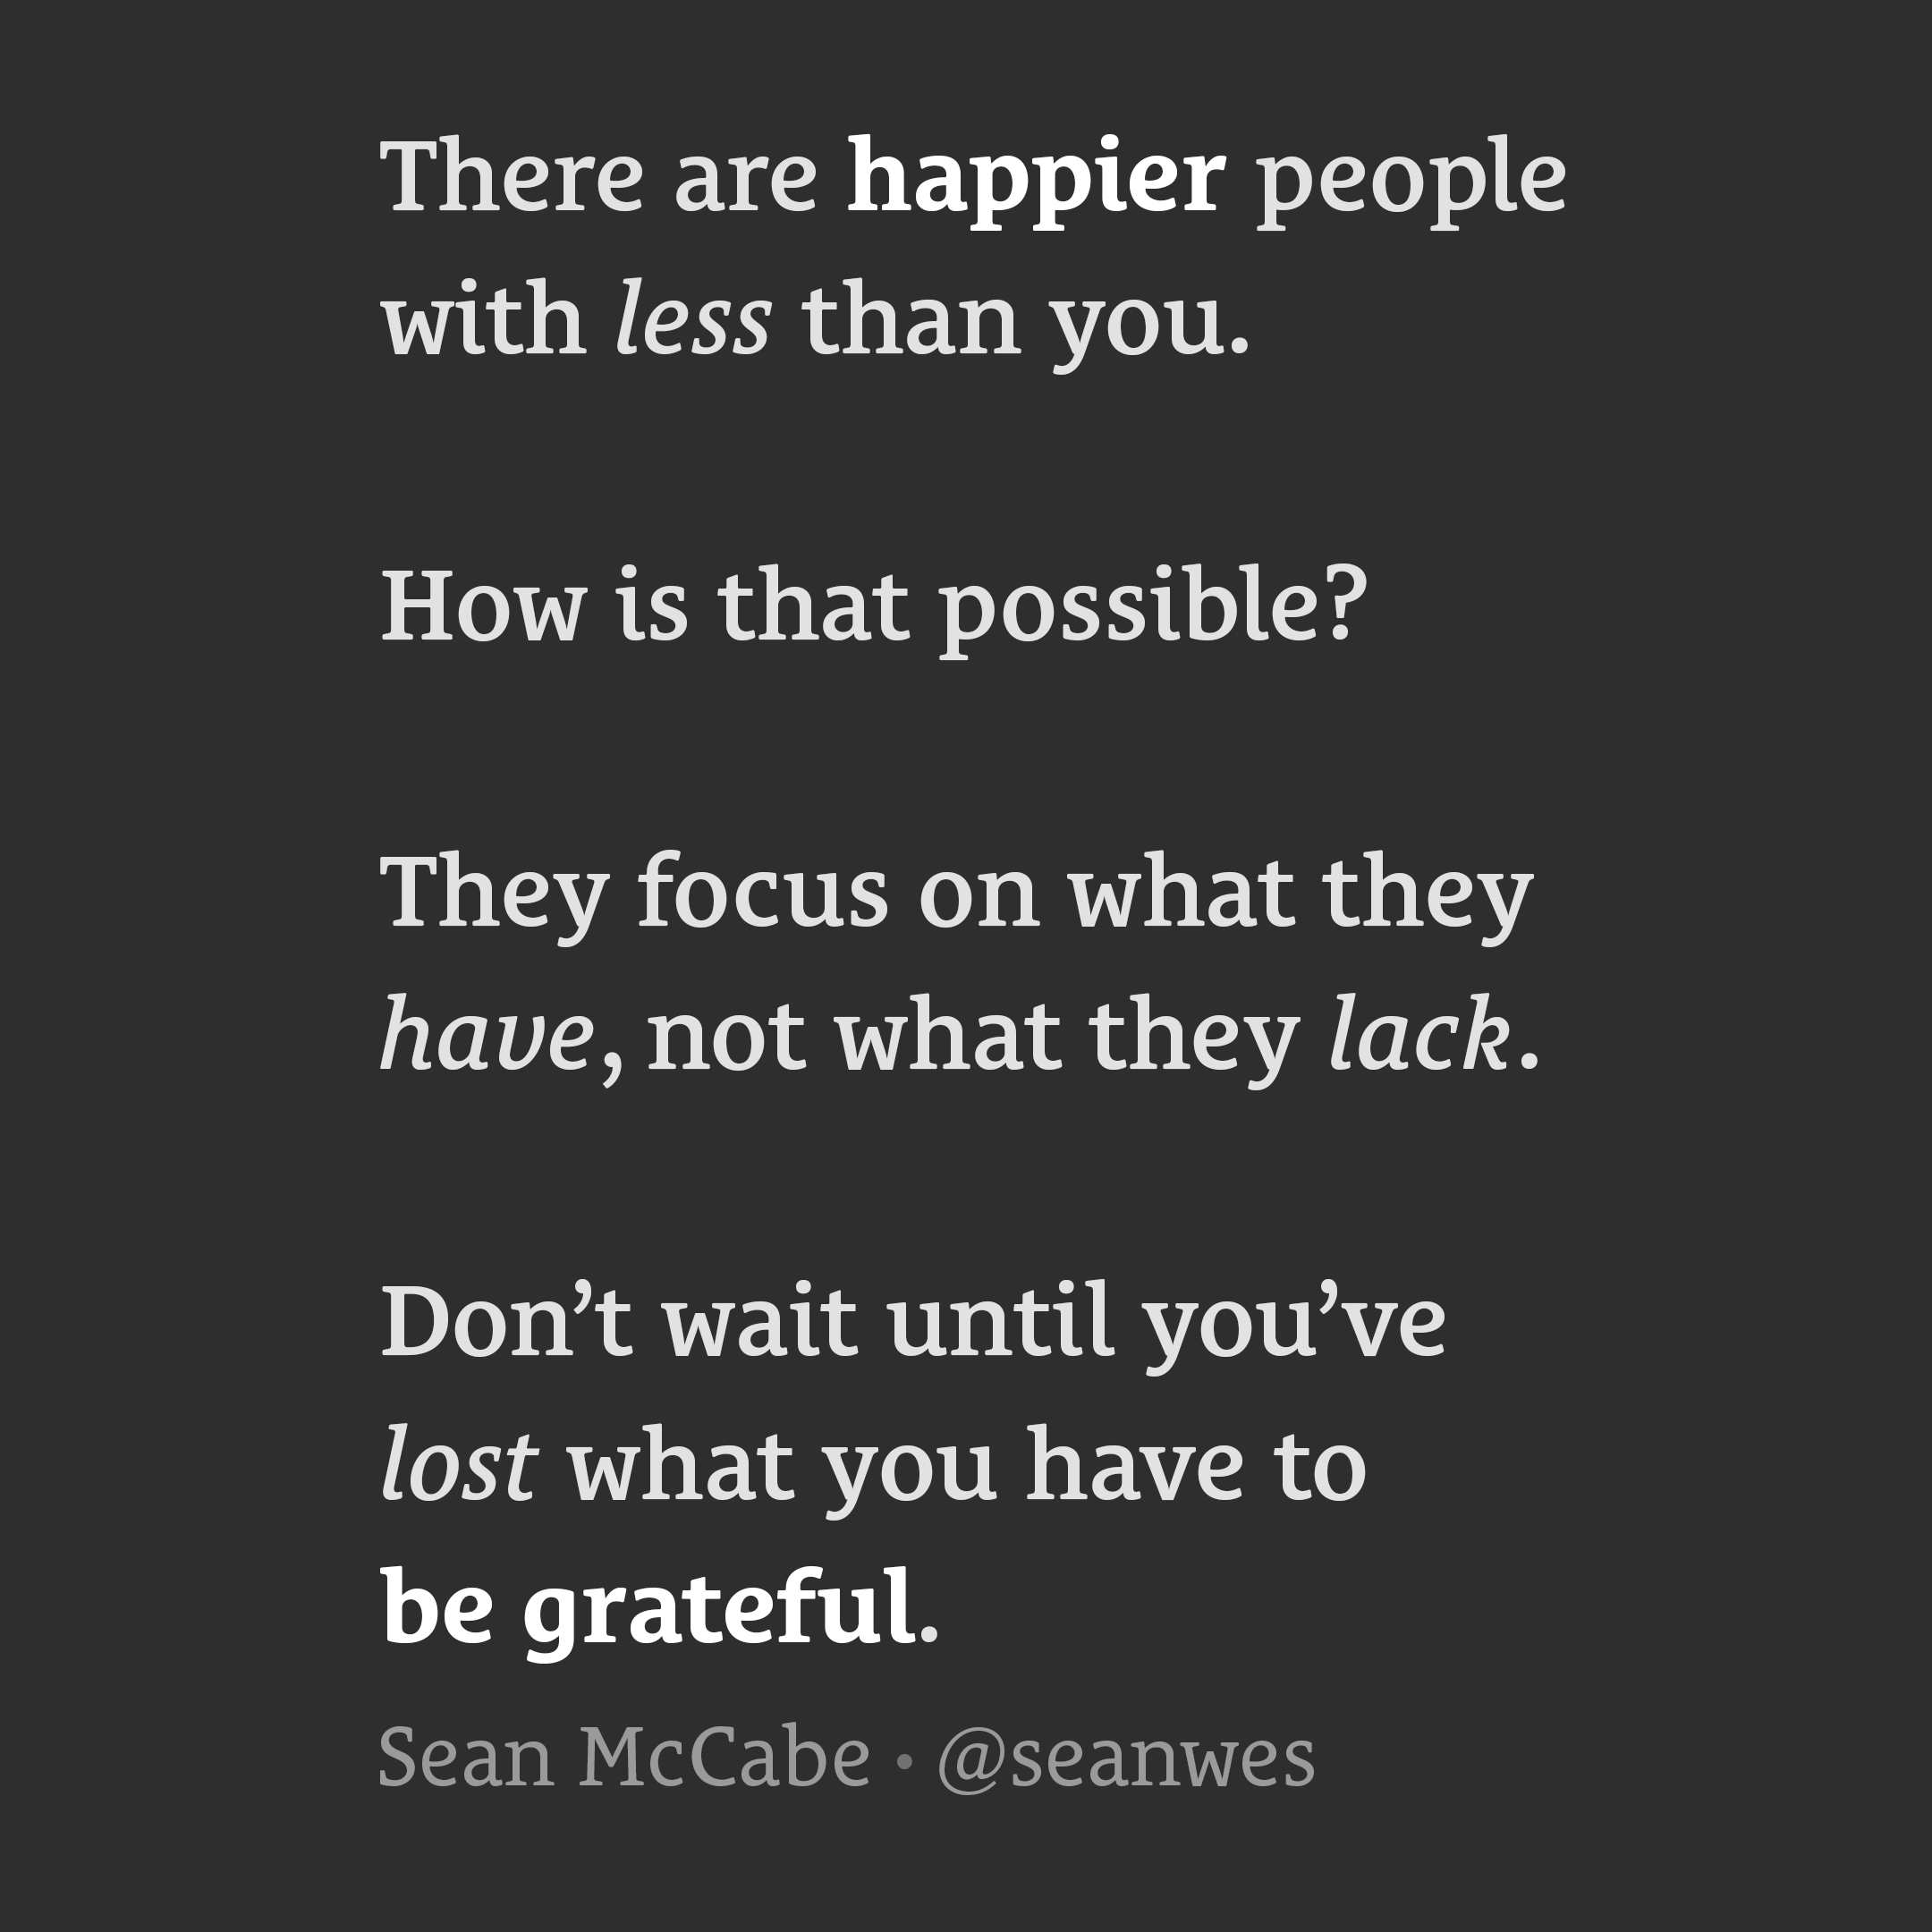 Happier people with less.